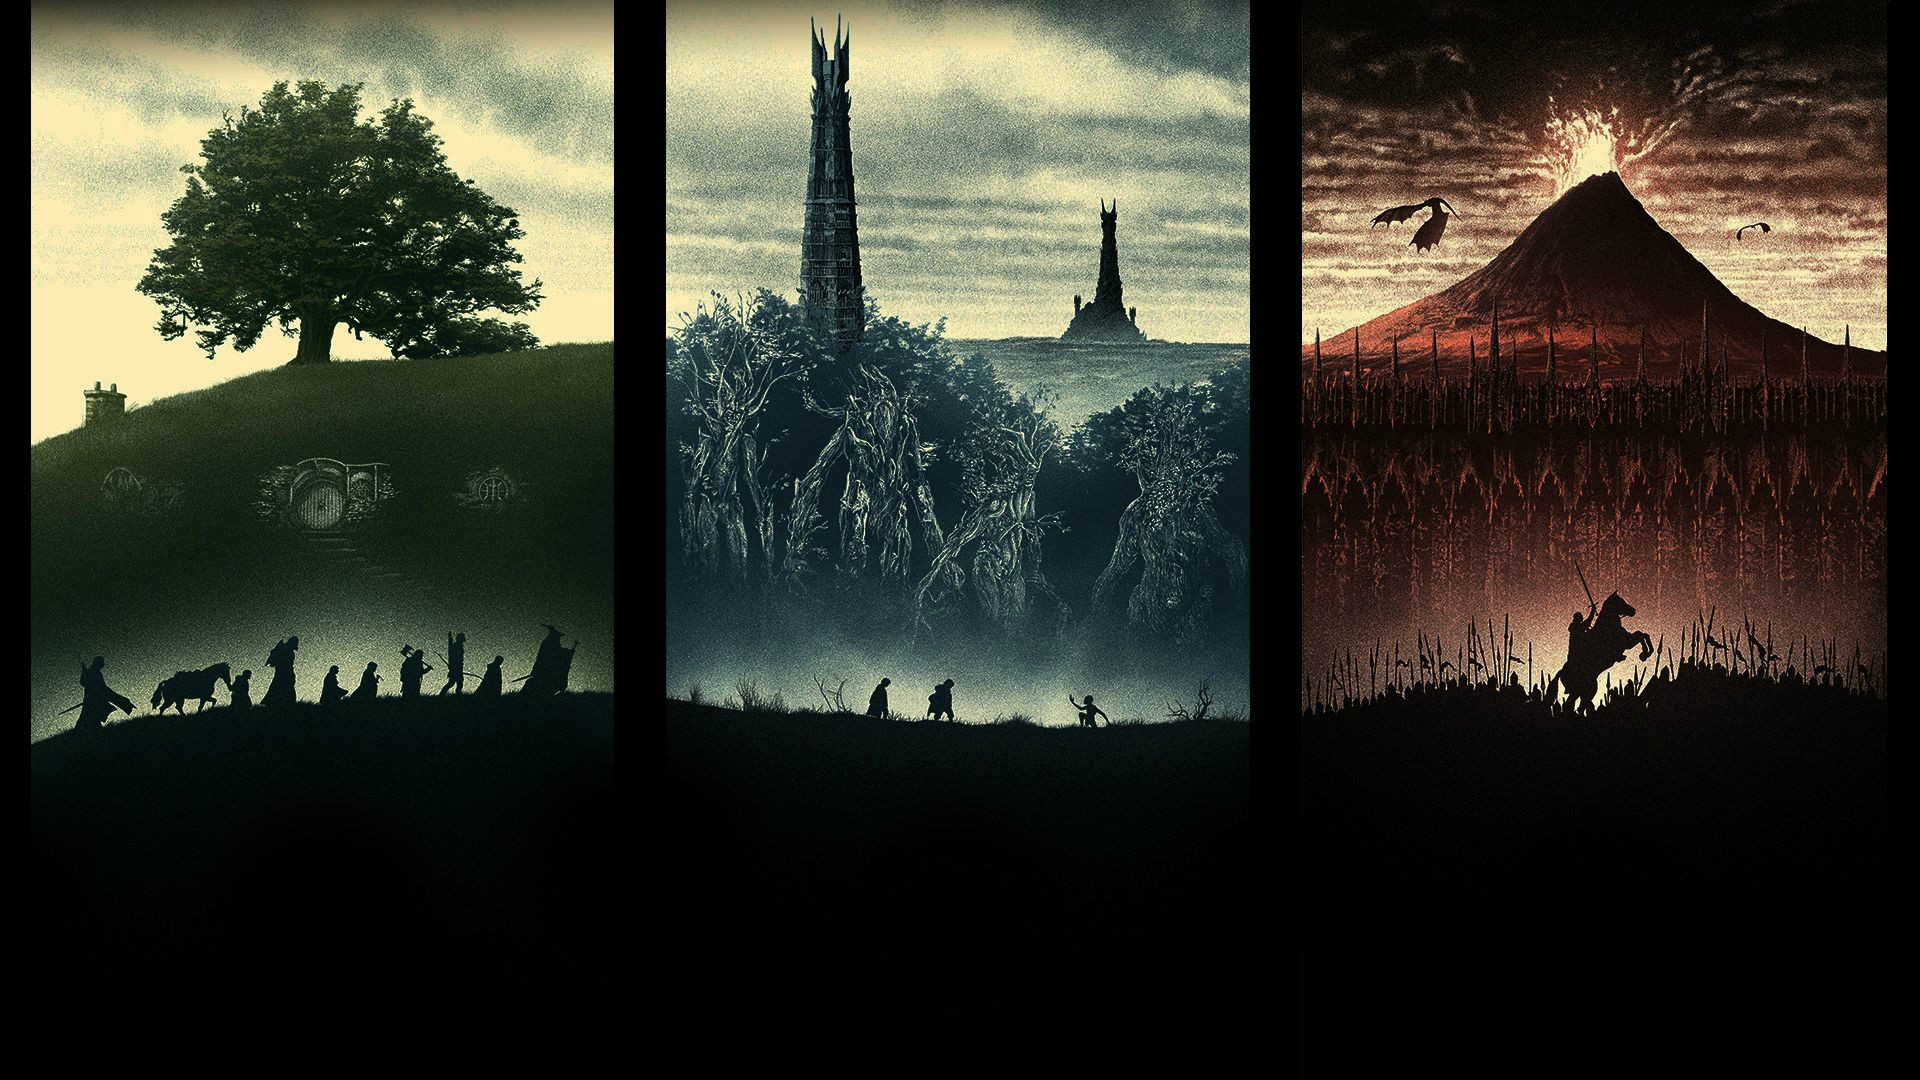 Lord Of The Rings Wallpaper 1920x1080 Posted By Christopher Peltier